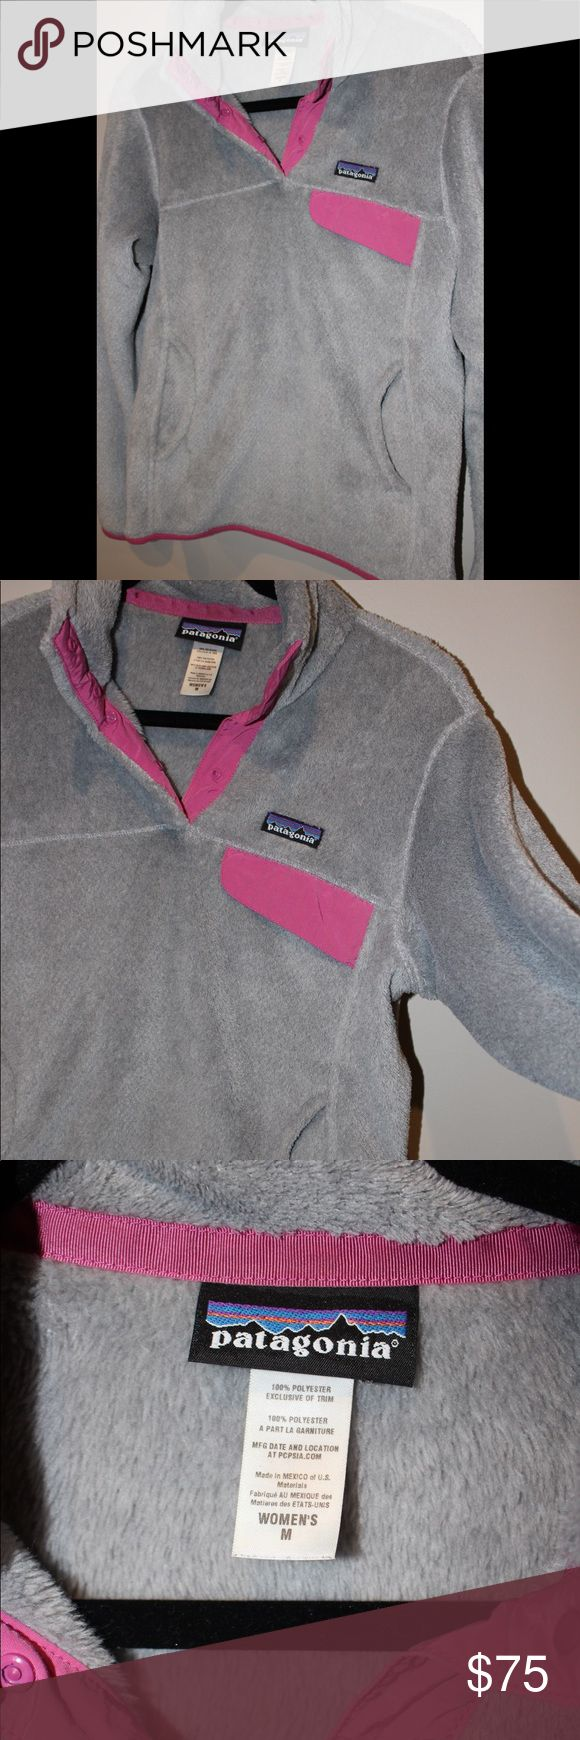 Patagonia Fleece Pullover Perfect Condition! Gray/pink Women's size Medium fleece pullover•100% polyester•machine wash Measurements (Laying Flat): armpit to armpit-20 inches / shoulder to wrist-25 inches / shoulder to bottom of front he-24 inches •stretchy waistband Patagonia Other